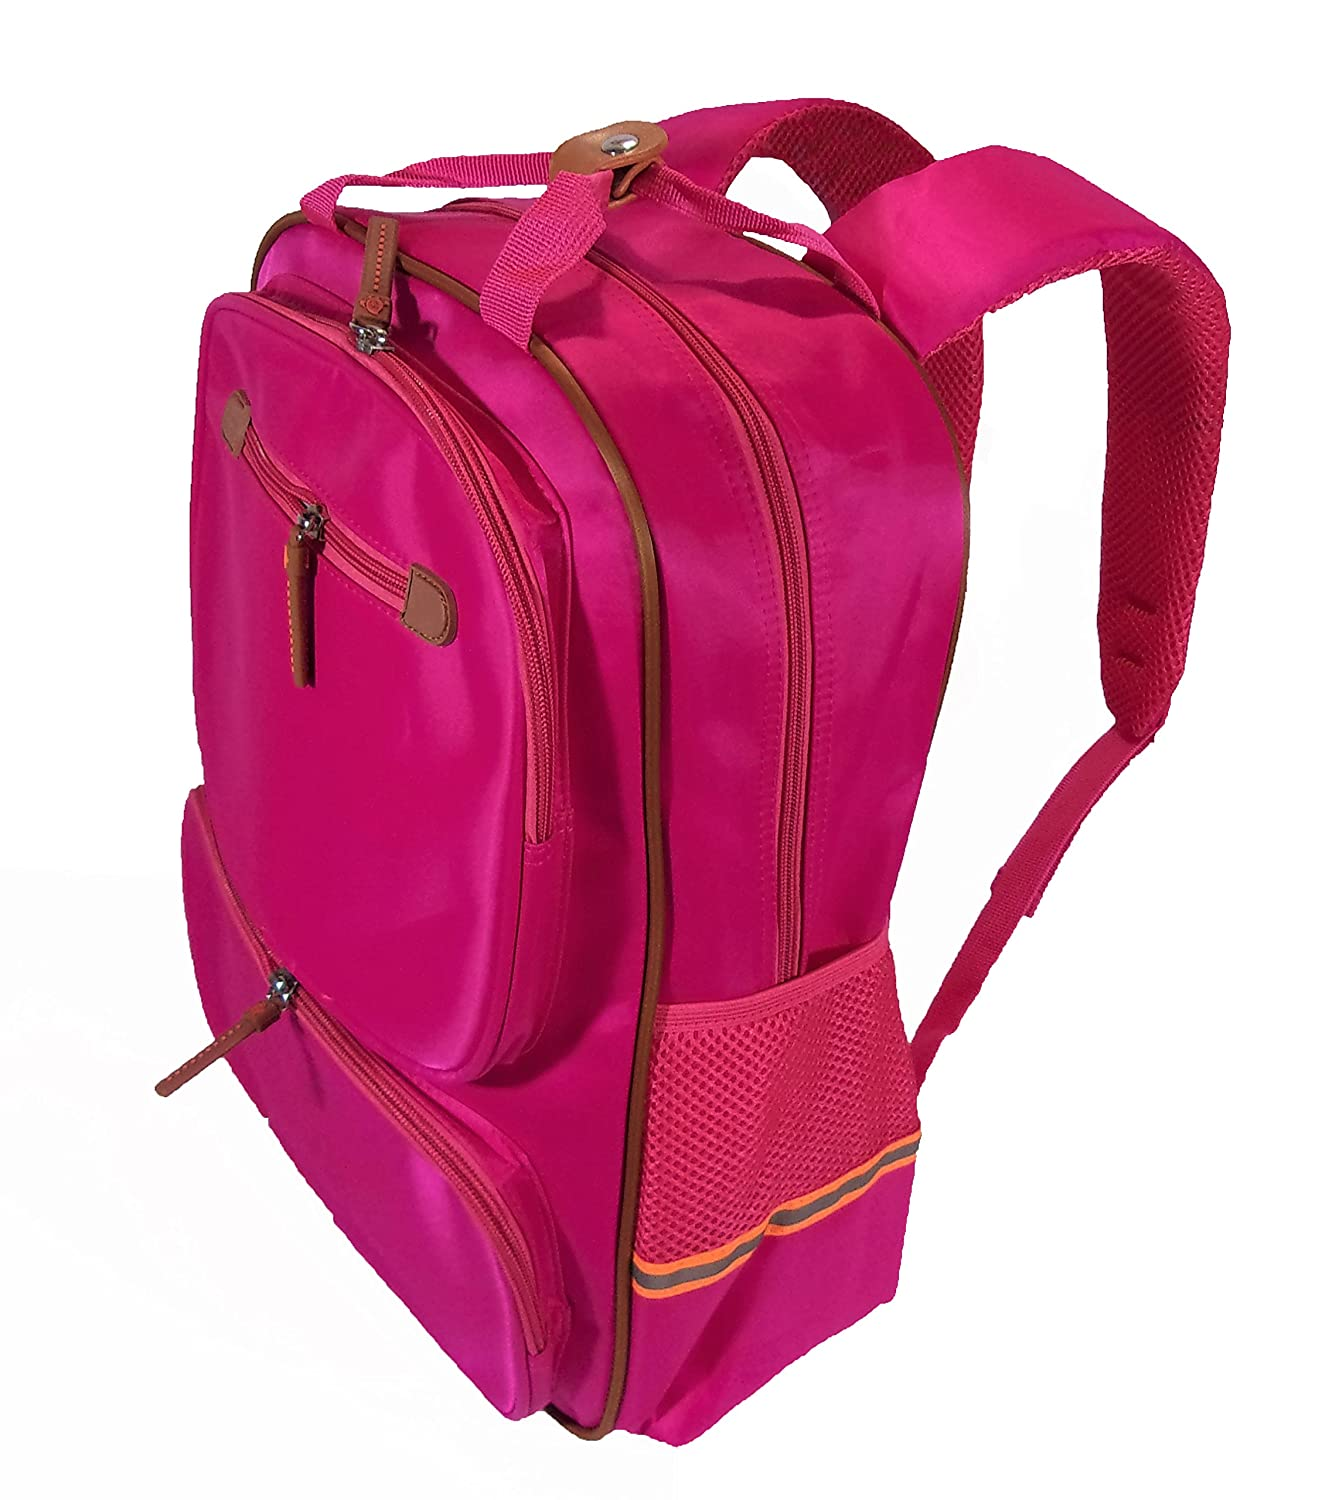 73f882d7e3 Amazon.com  Waterproof School Backpack Assorted for Boys and Girls. Tear  resistant for school and travel. Made of Nylon and Fluorescent Strips.   Clothing